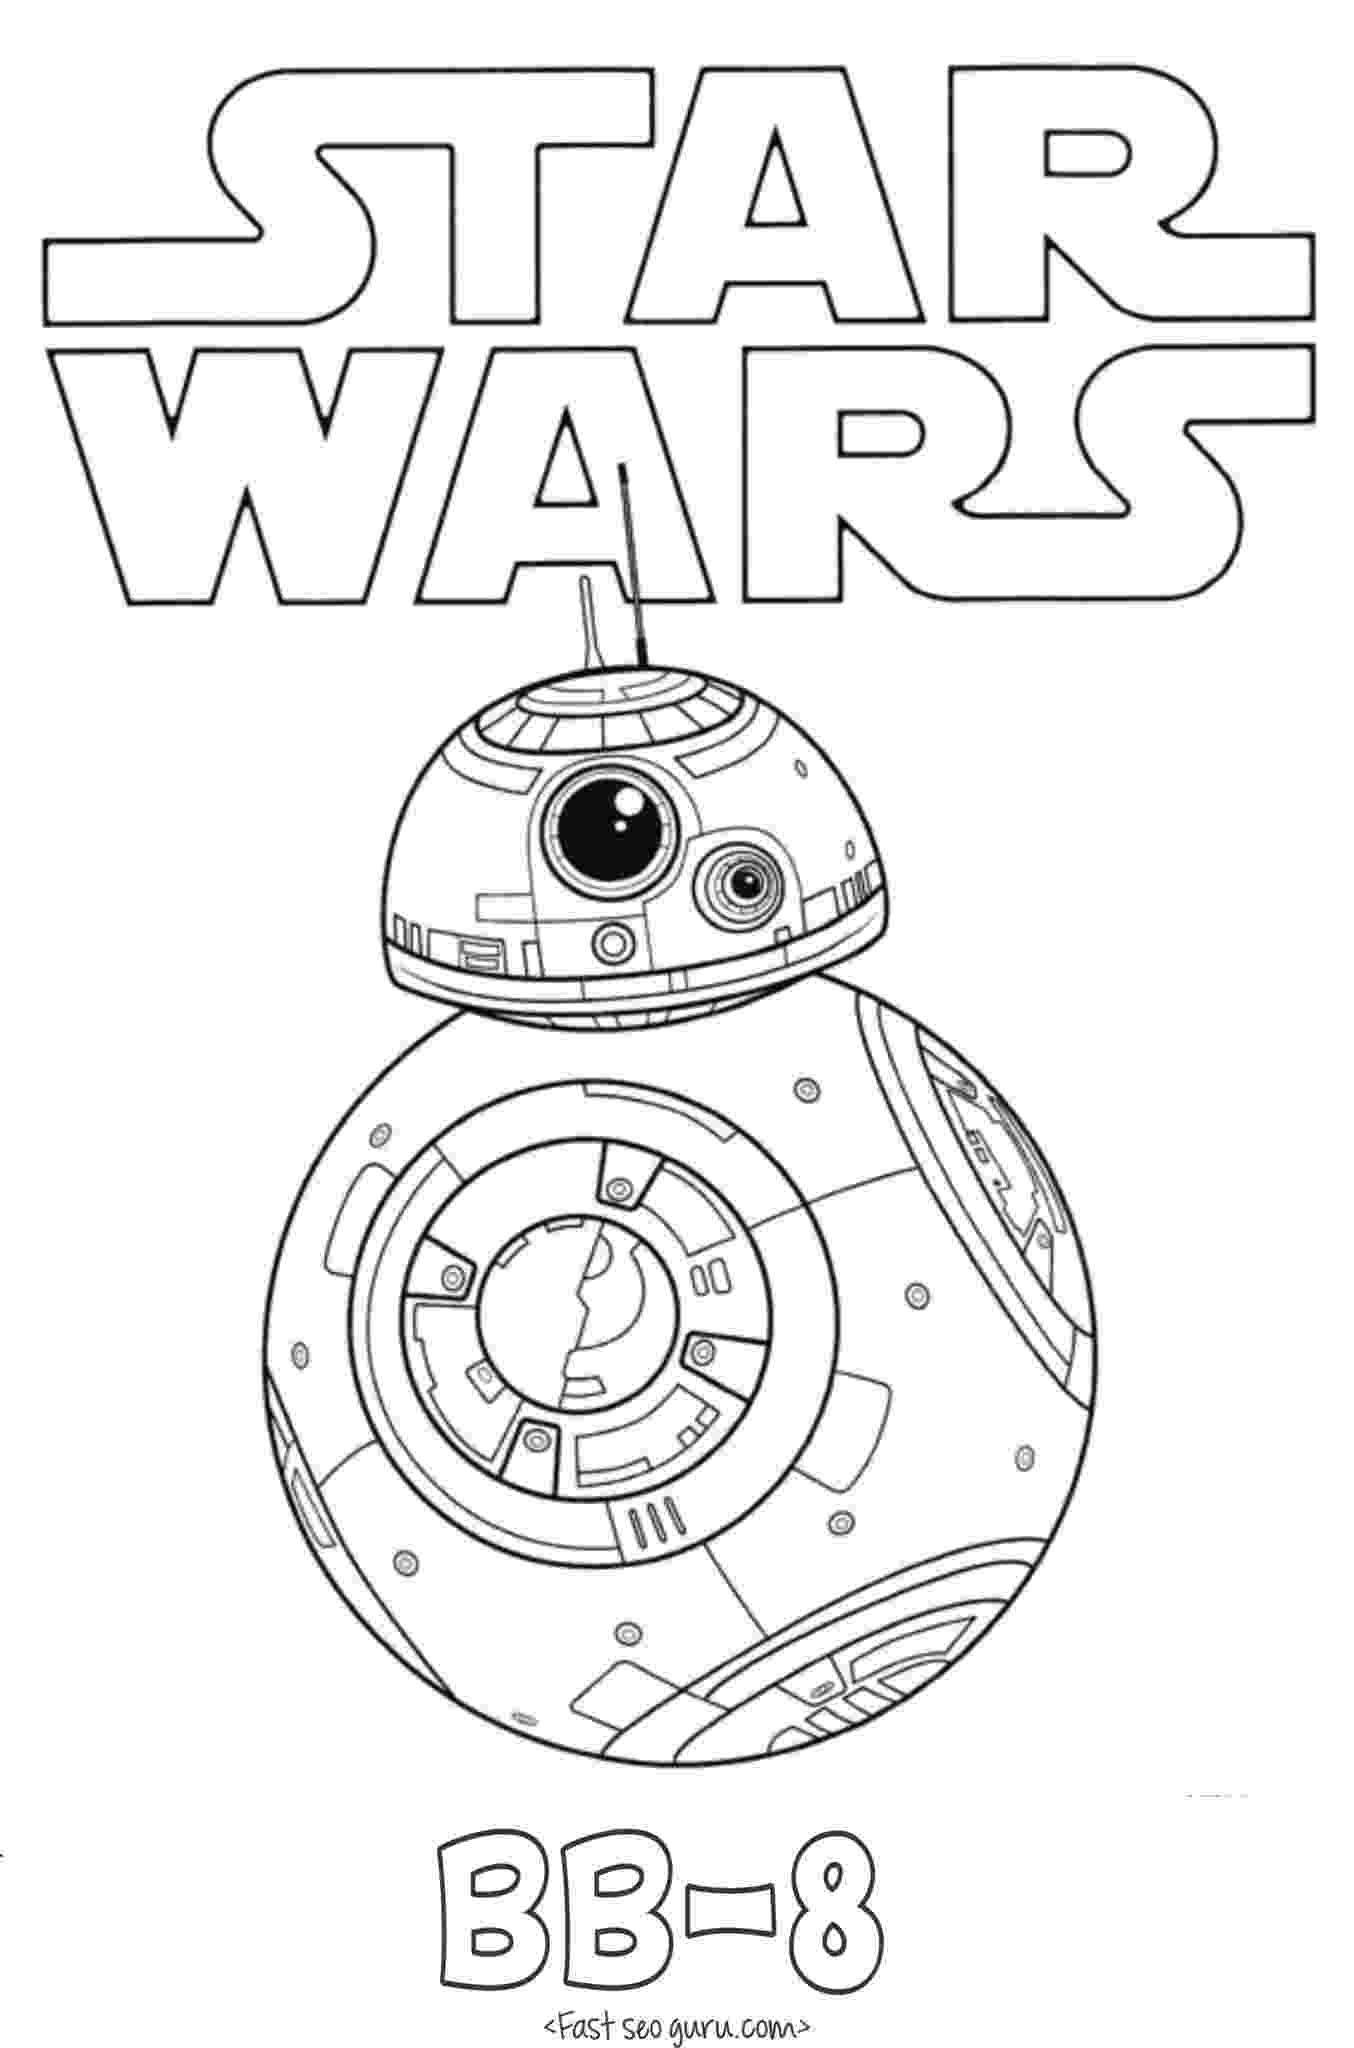 star wars coloring pages printable top 25 free printable star wars coloring pages online printable pages coloring wars star